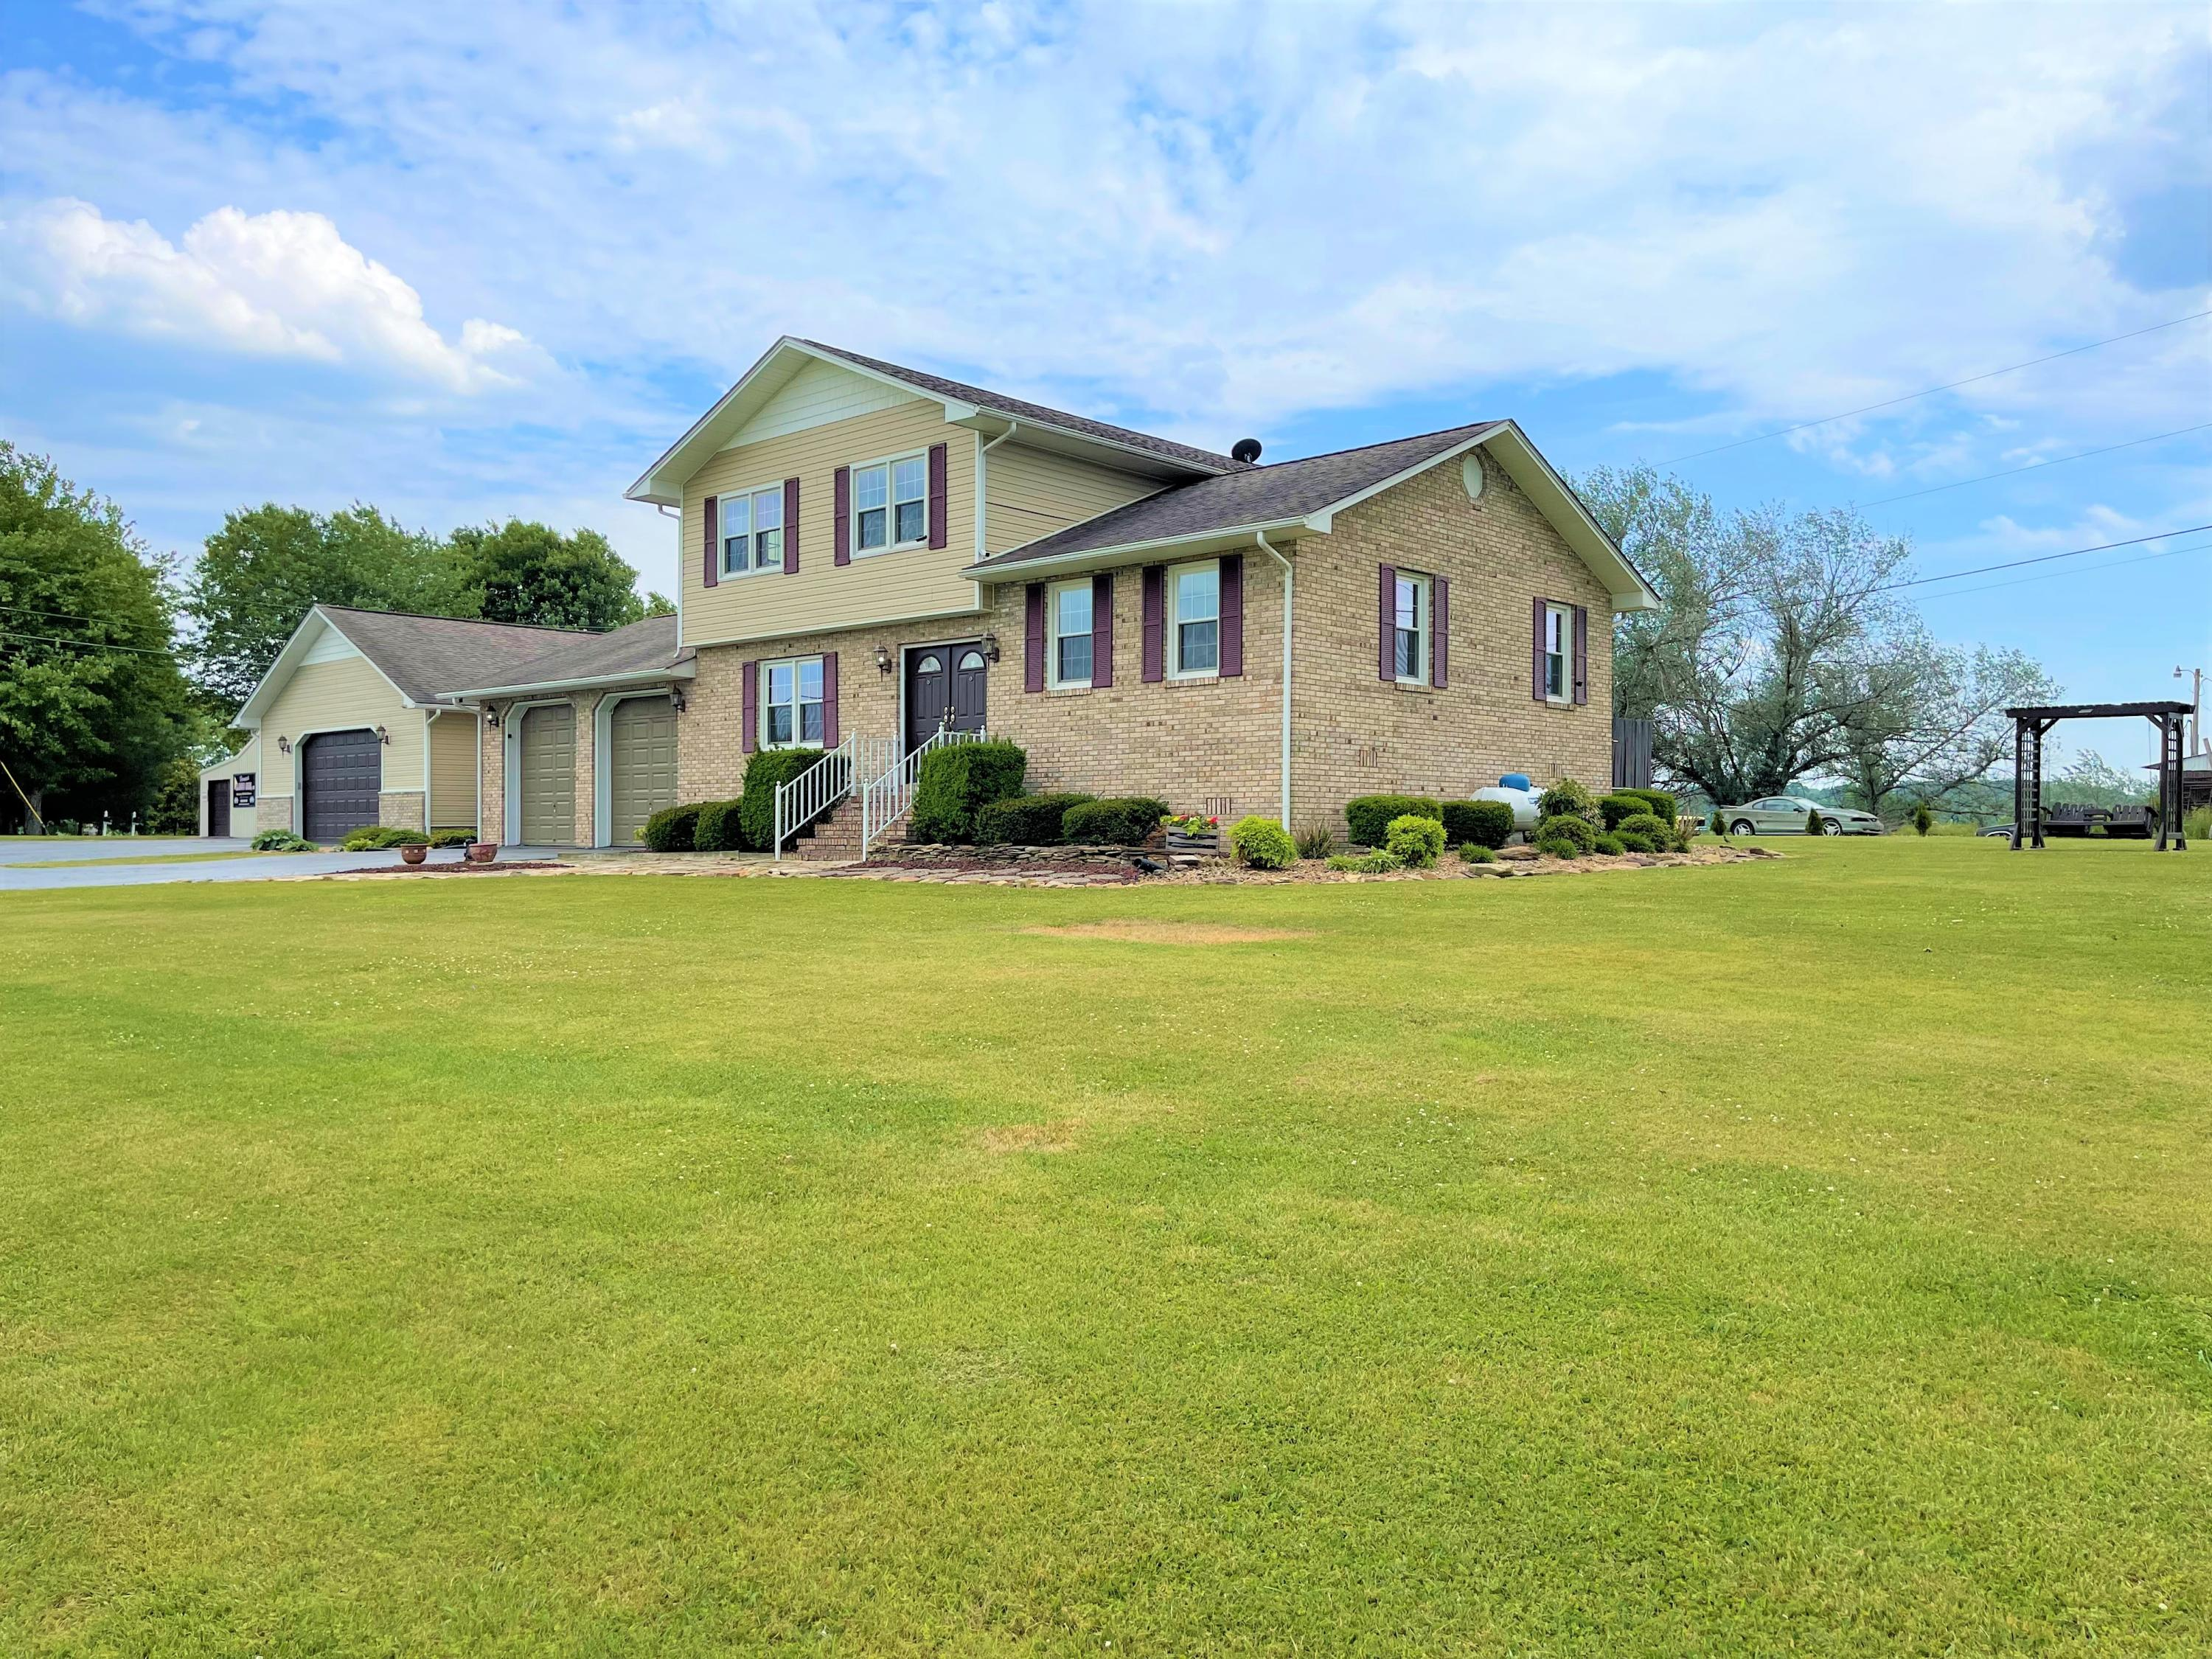 580 Smith Brewer, London, KY 40744